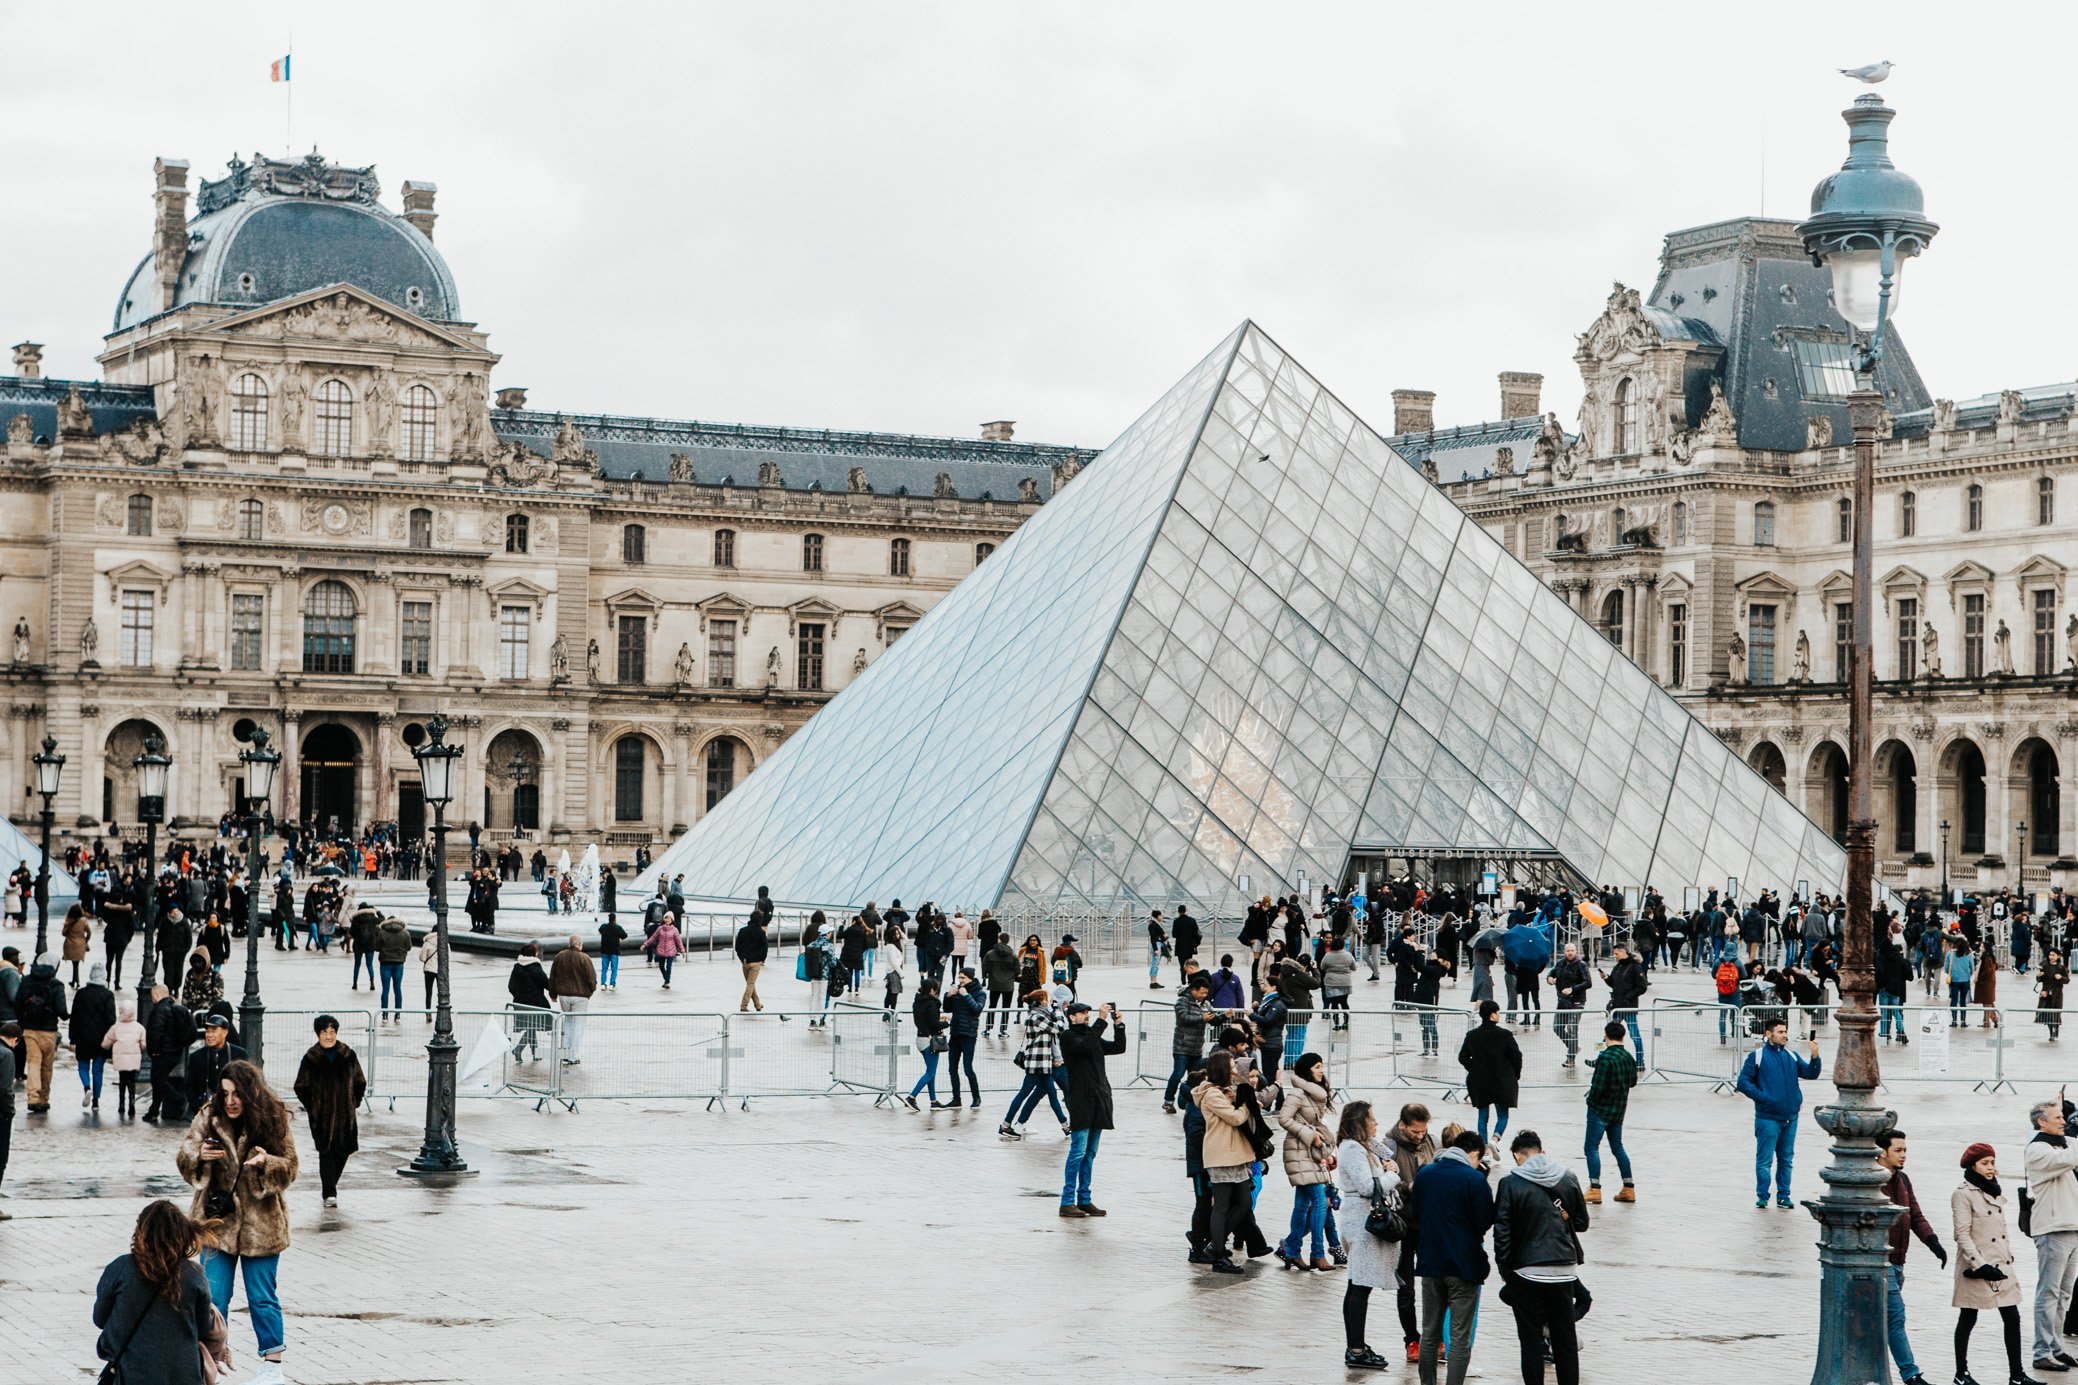 The Louvre | Paris, France | December 9th, 2018 | (Photo by David A. Smith / DSmithScenes)